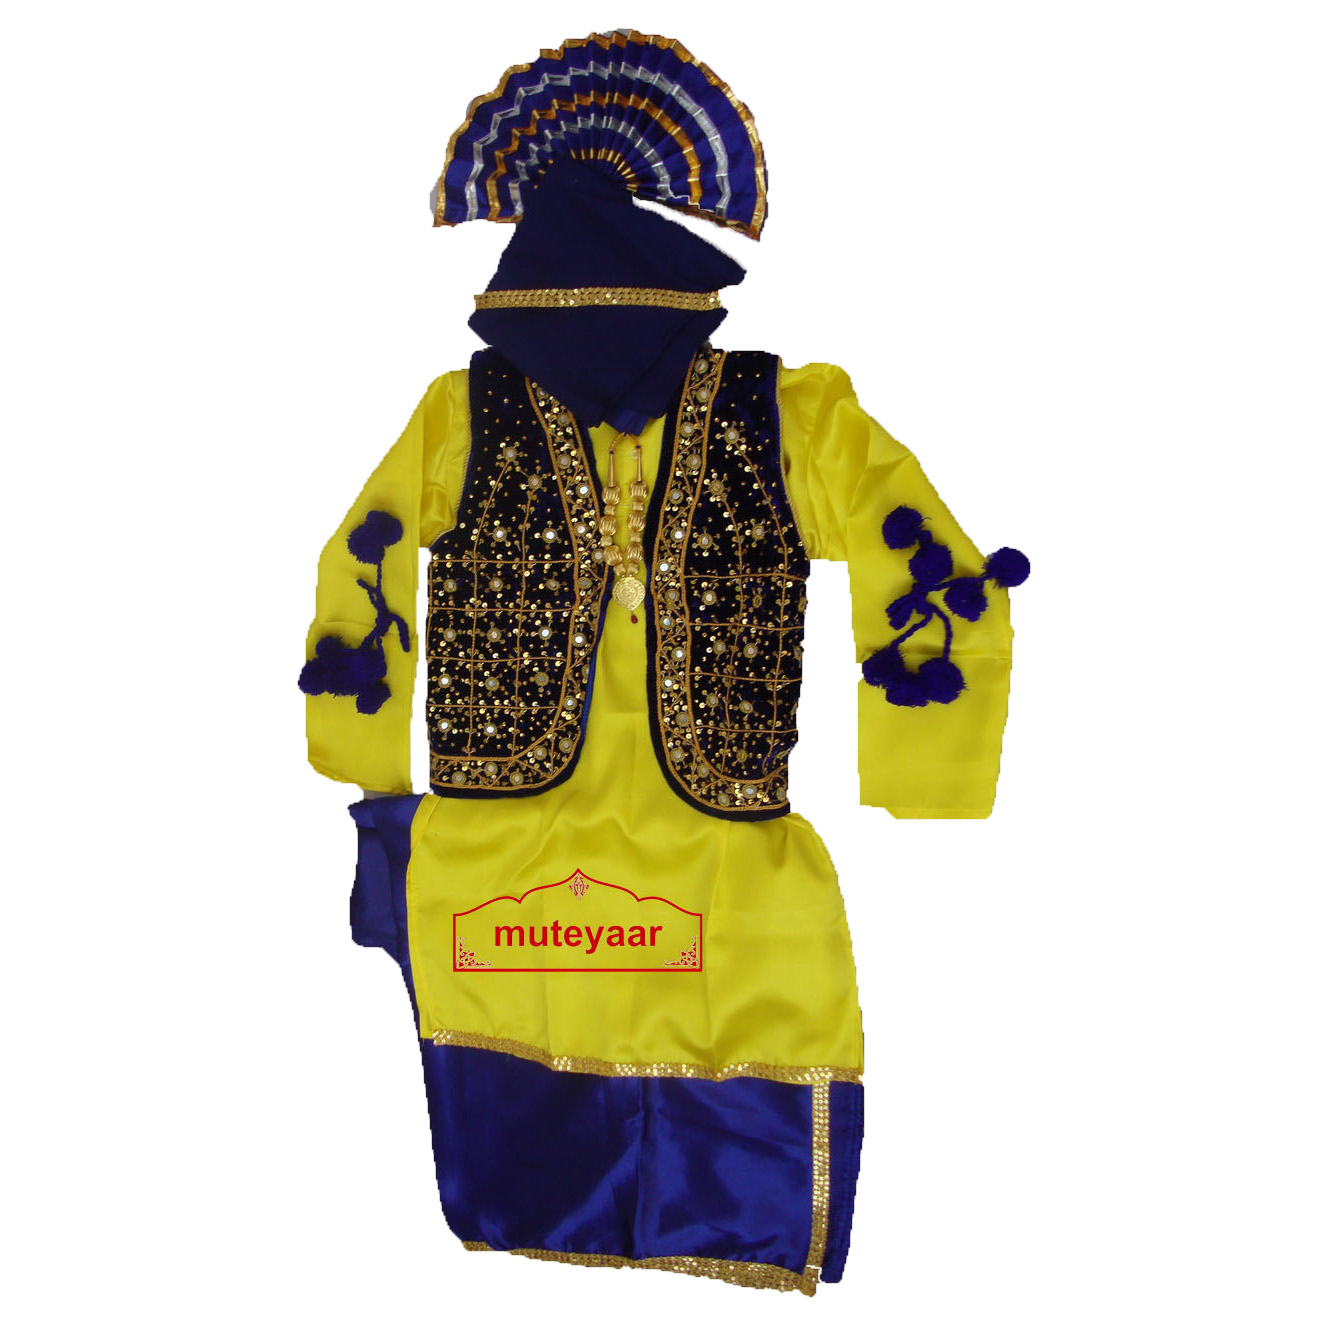 Bhangra dance Costume / outfit - ready to wear 1